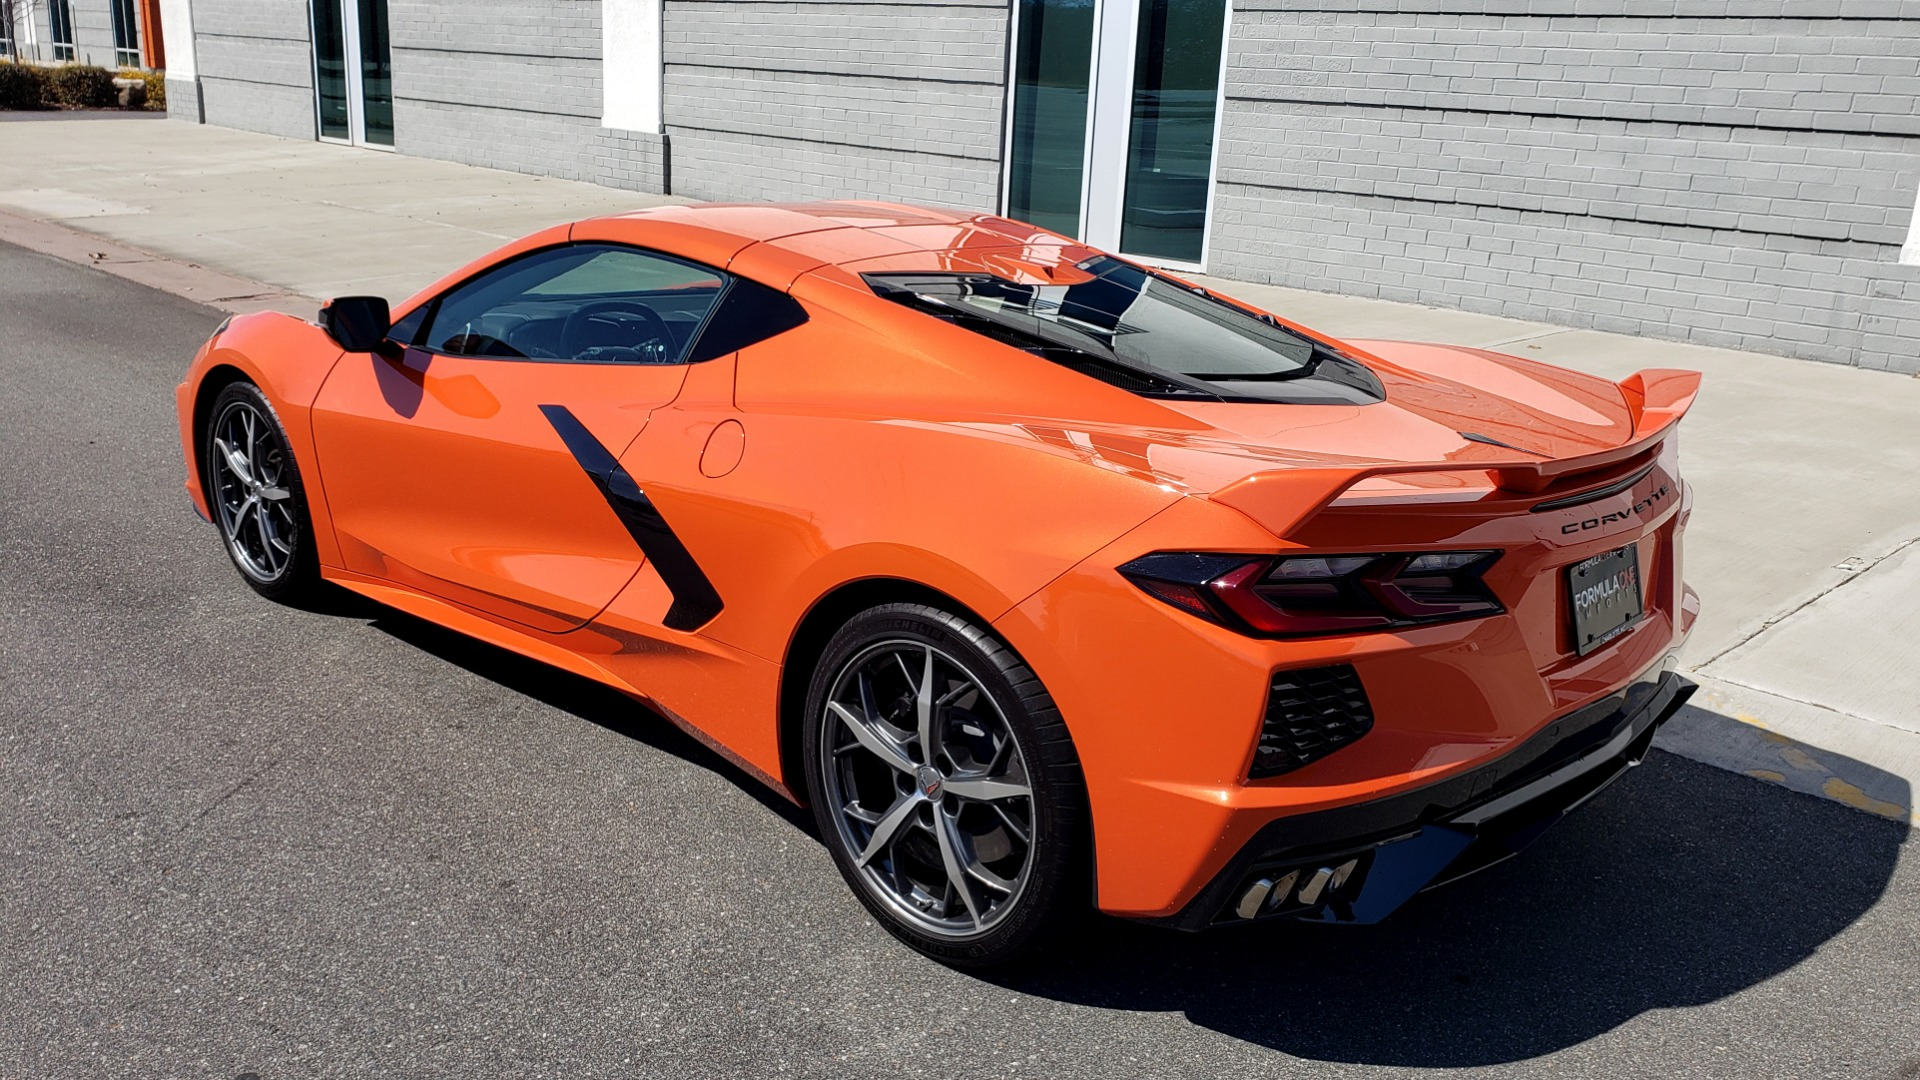 Used 2020 Chevrolet CORVETTE C8 STINGRAY 3LT COUPE / NAV / BOSE / CAMERA / LIKE NEW for sale Sold at Formula Imports in Charlotte NC 28227 7